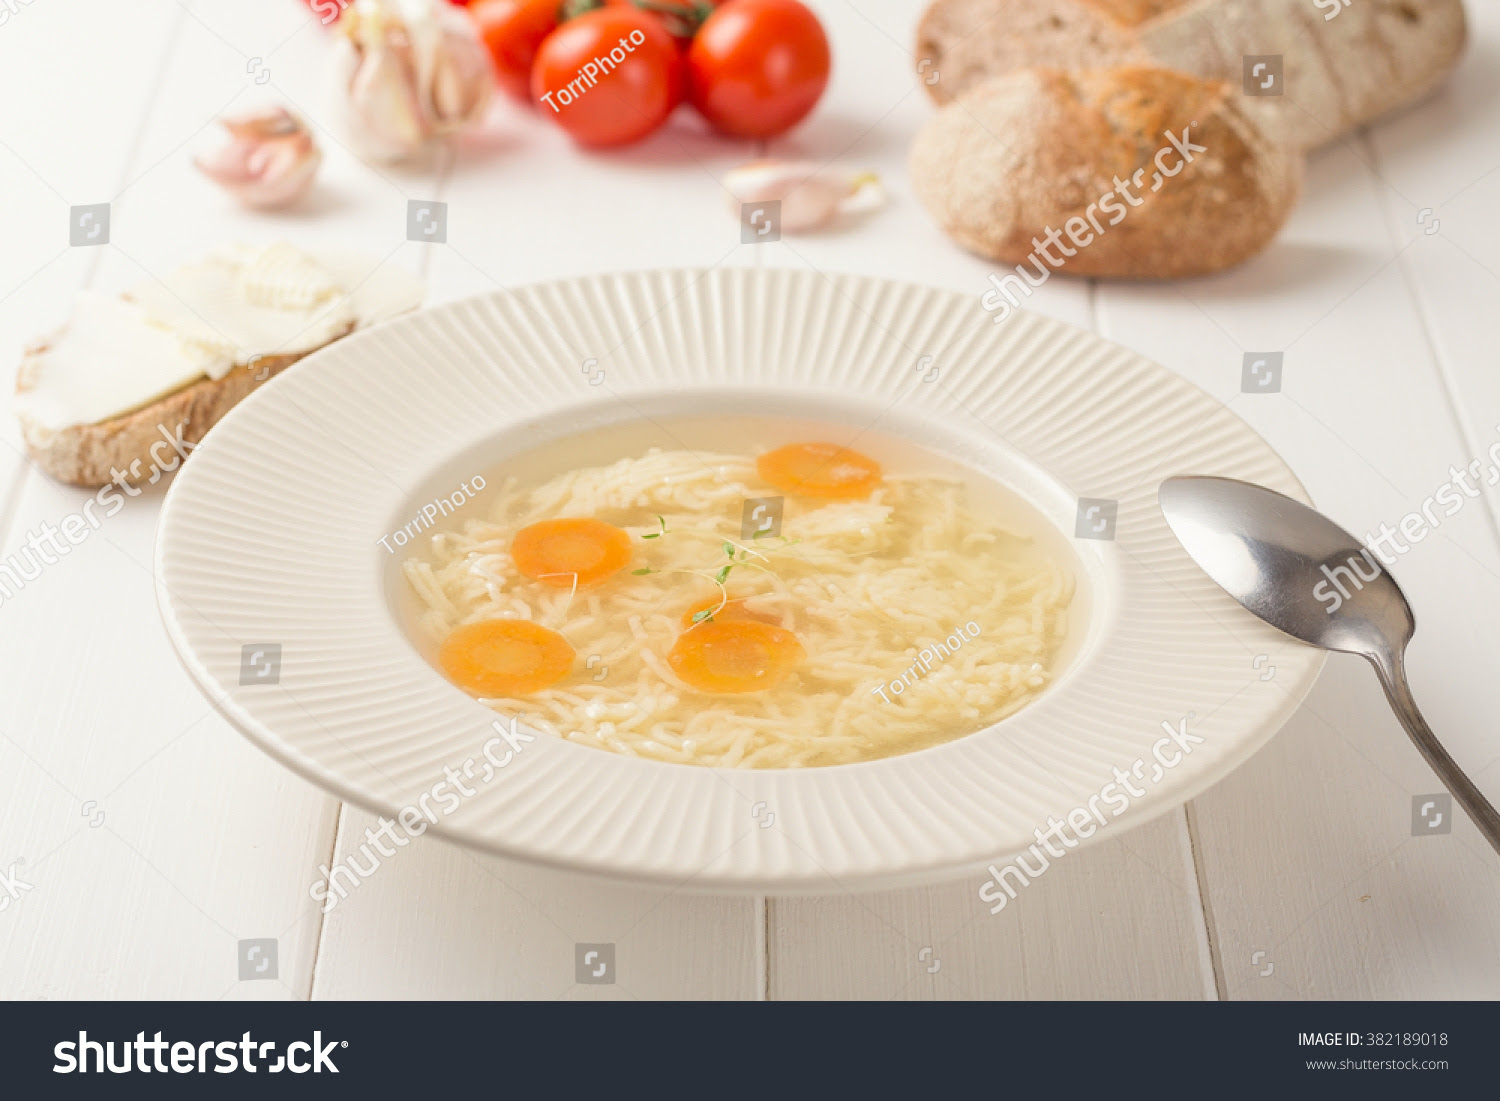 http://www.shutterstock.com/pic-382189018/stock-photo-chicken-broth-with-noodles-and-carrots-in-a-white-plate-on-white-wooden-table-shallow-focus.html